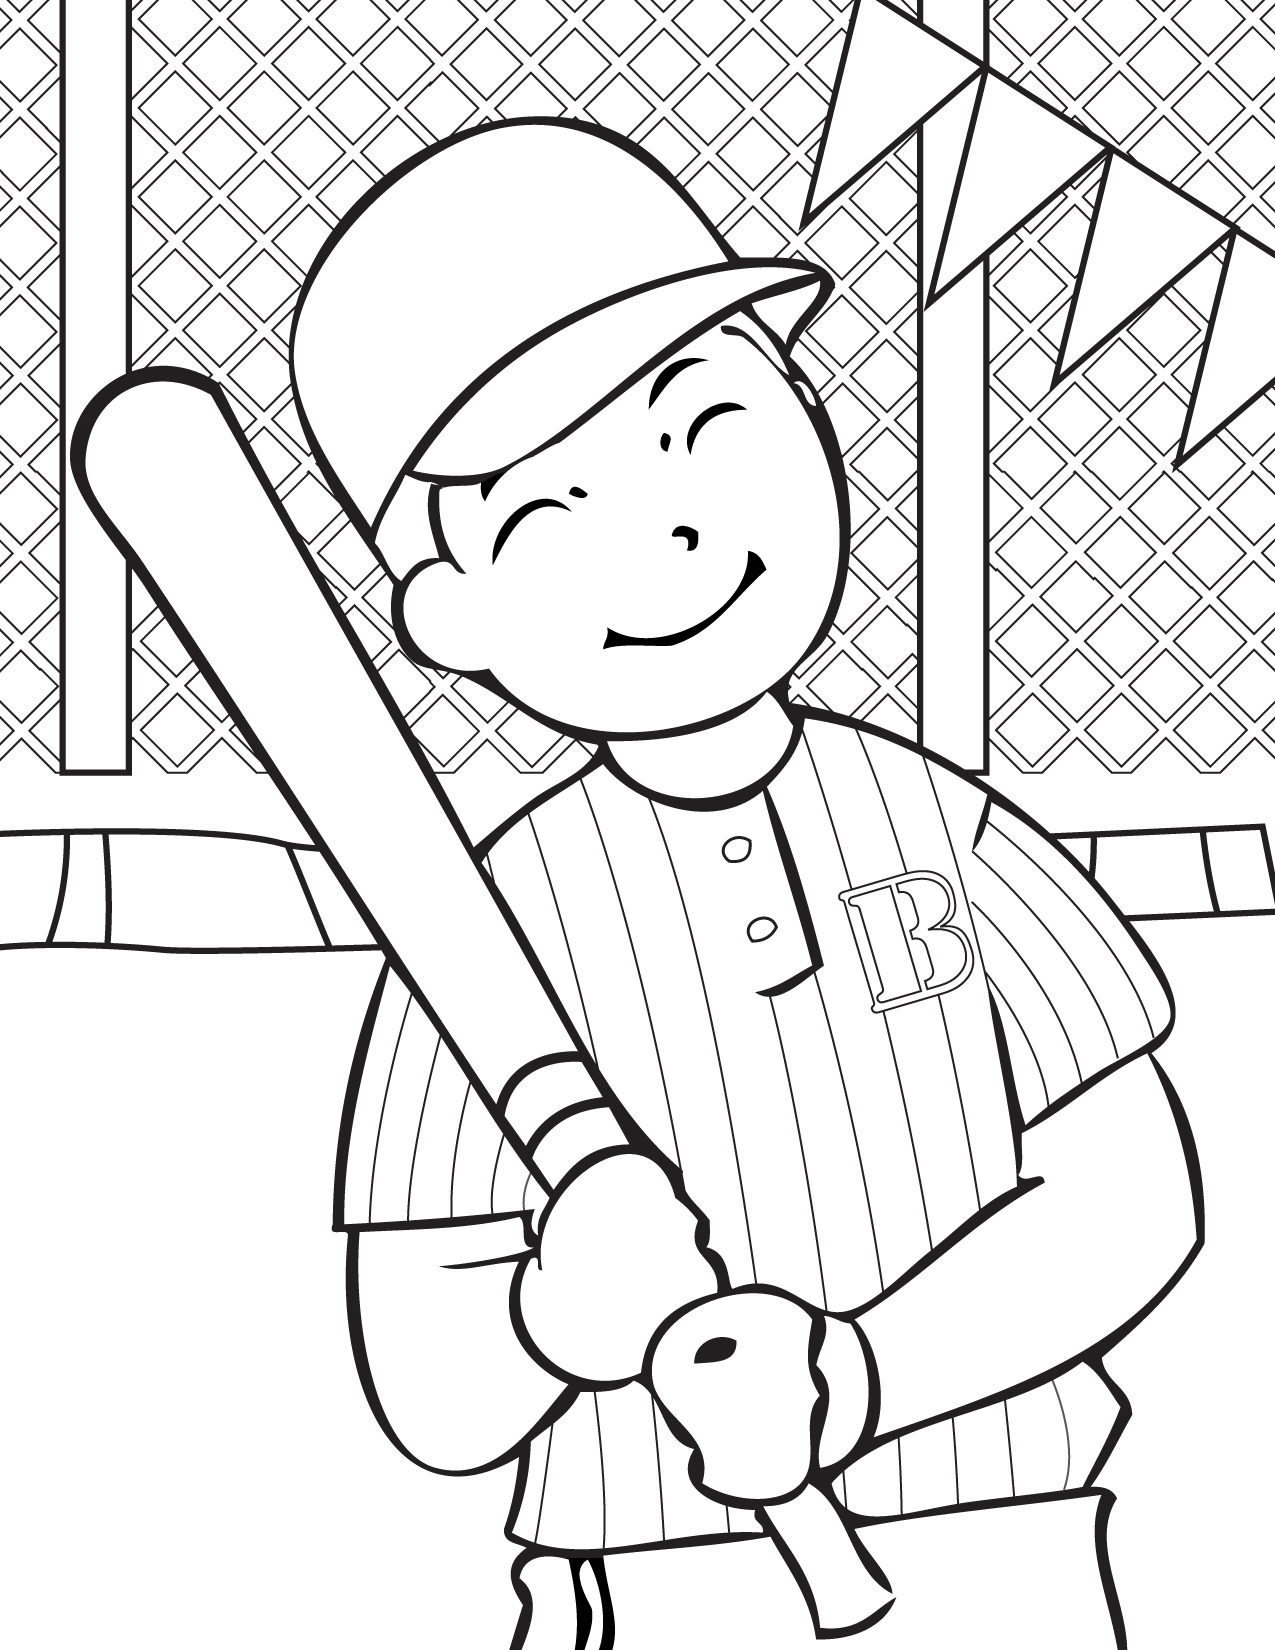 1275x1650 Cute Baseball Player Free Coloring Page Kids, Sports Coloring Pages